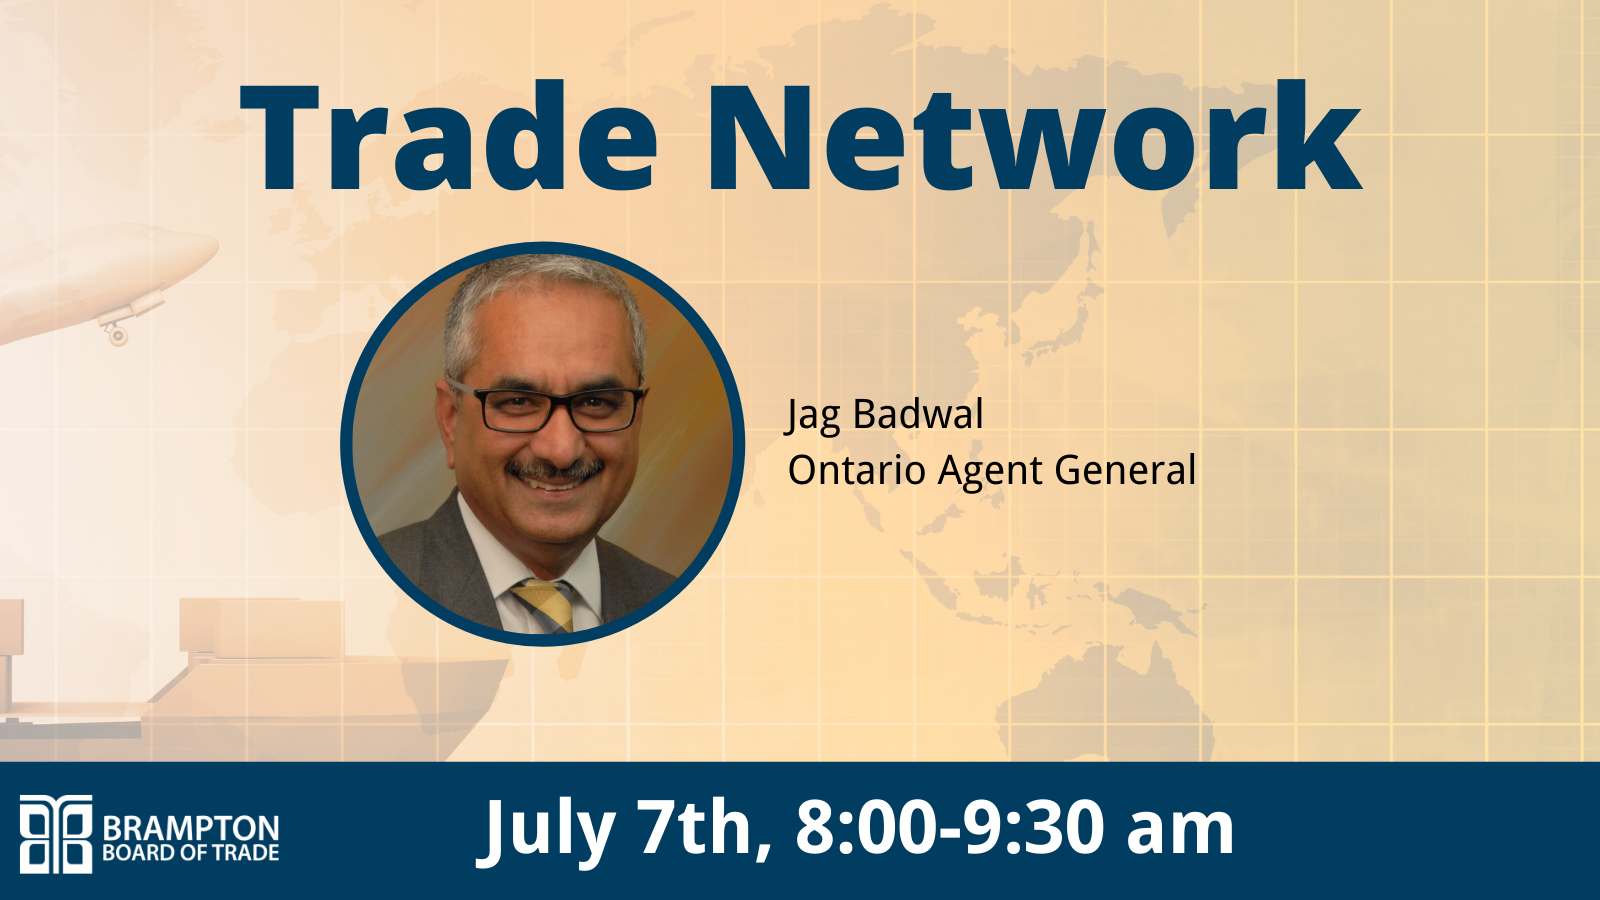 Copy-of-Trade-Network-email-banner-(3).png